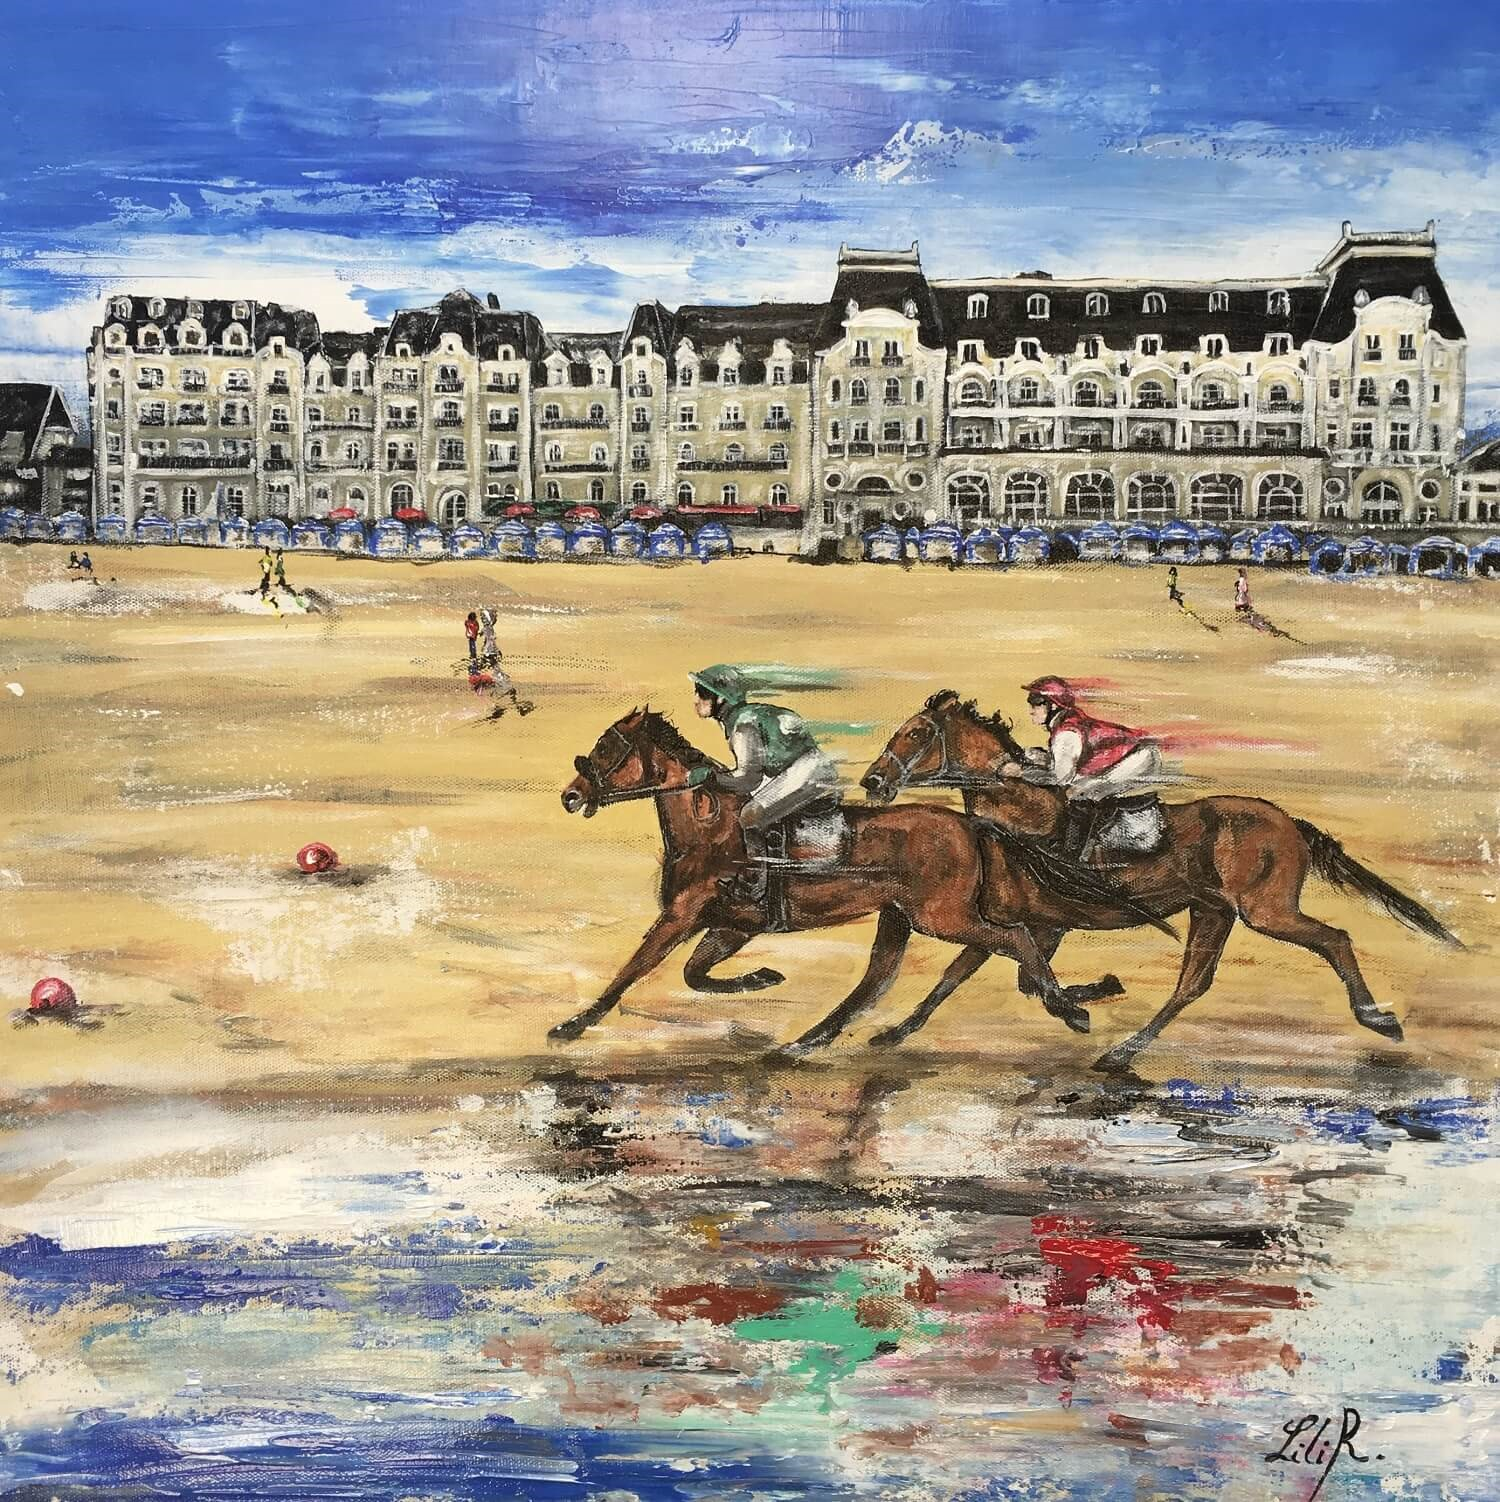 cabourg-grand-hotel-3-tableau-severine-richer-peintre-normand.jpg